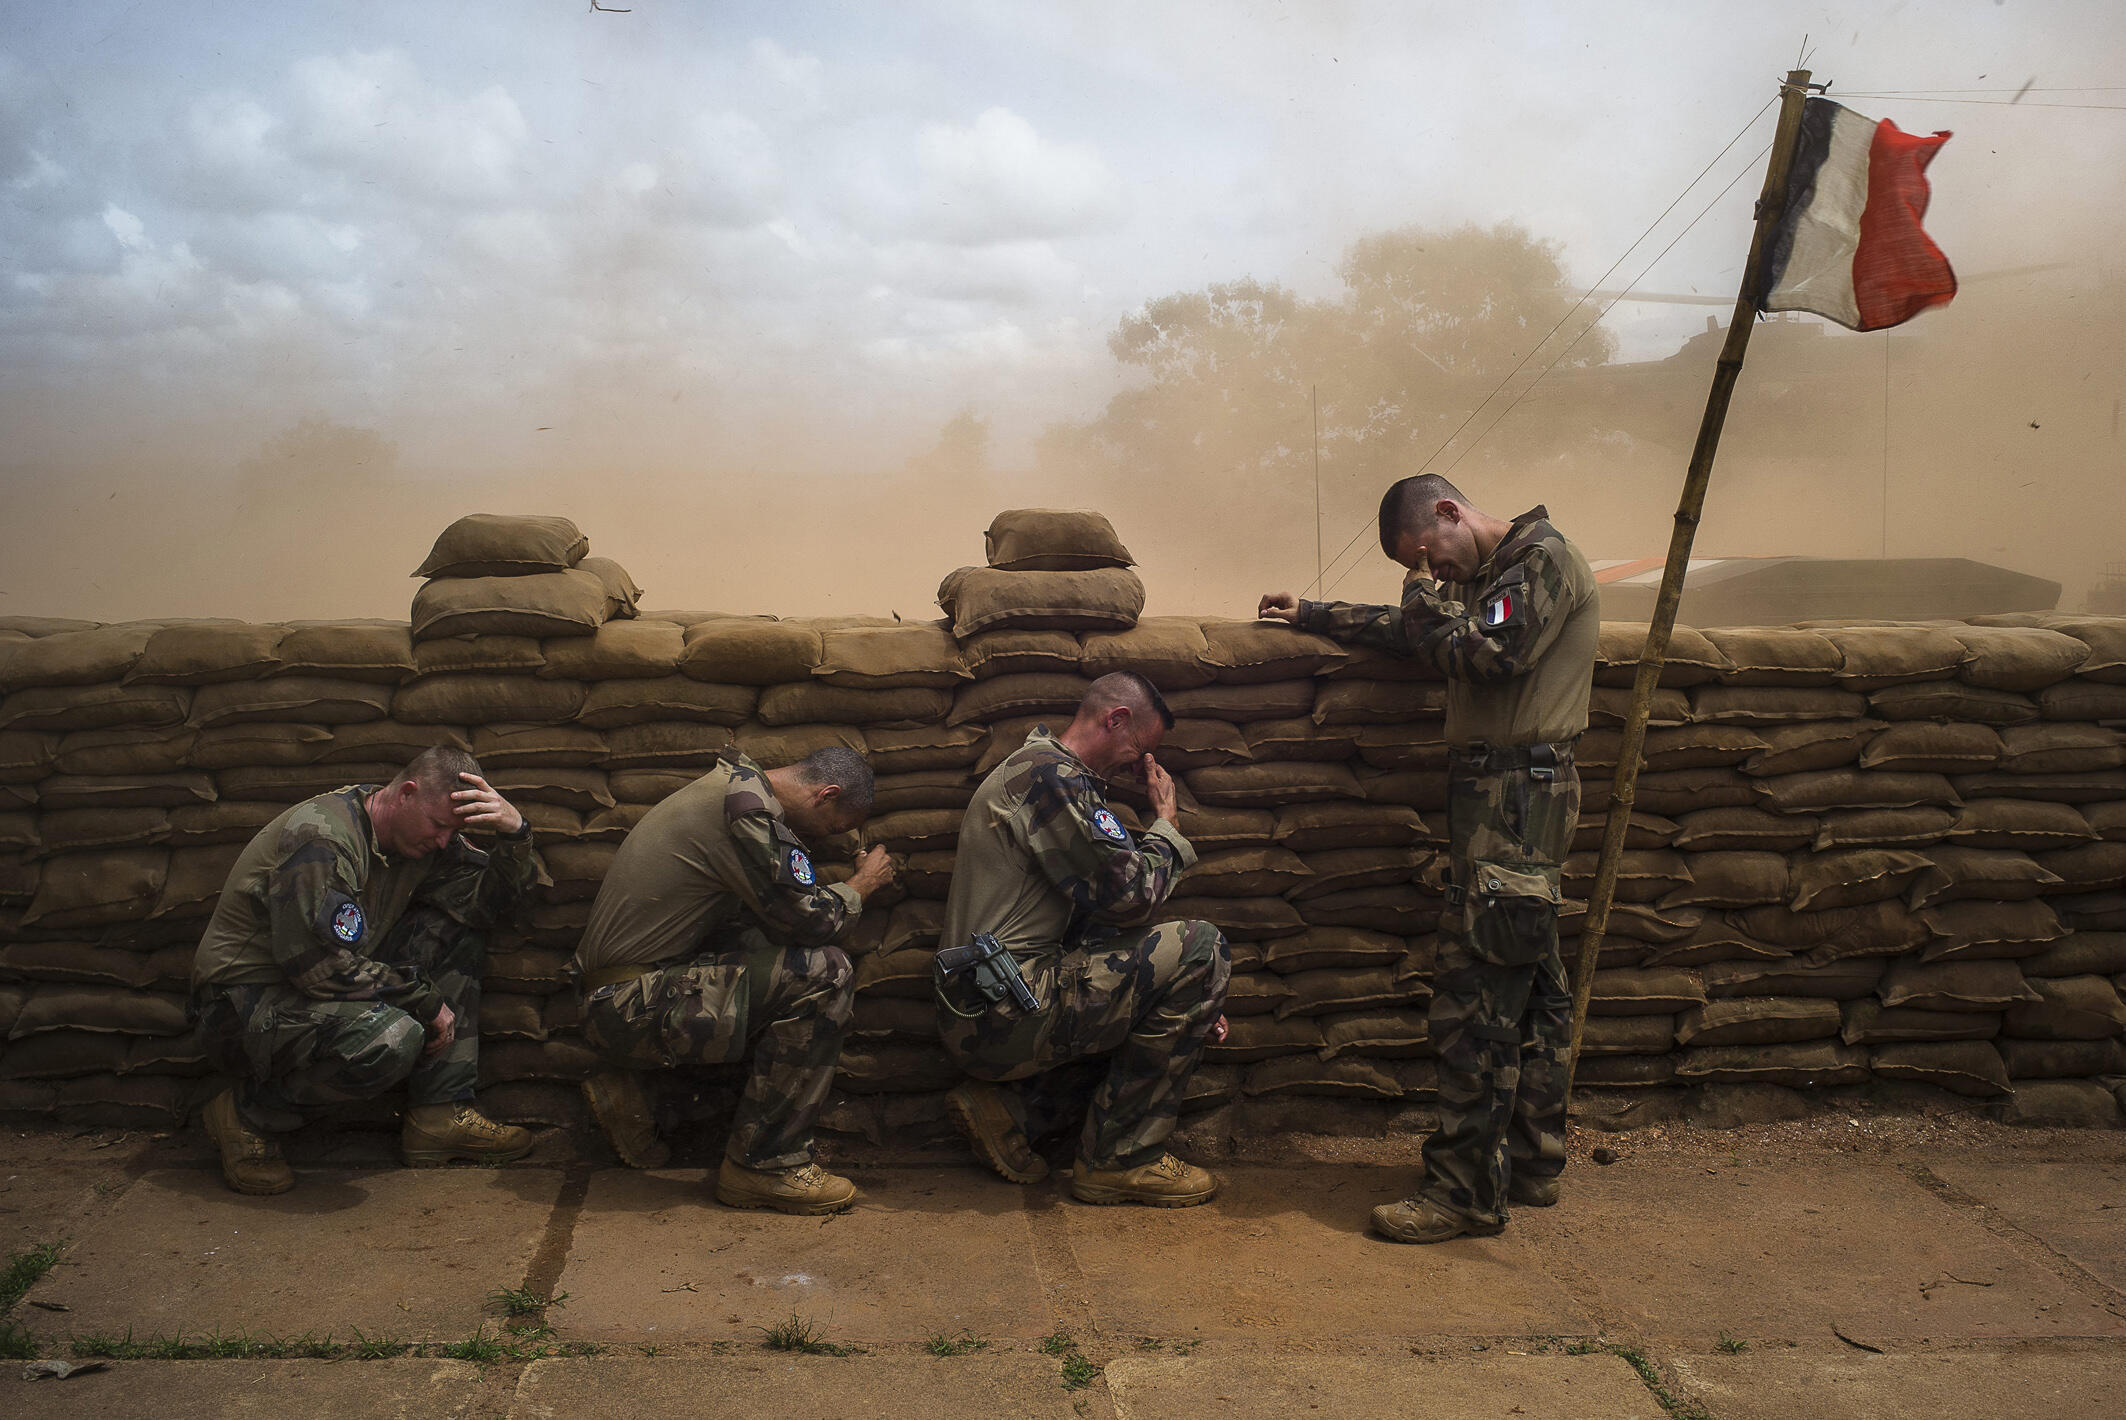 Soldiers sheltering behind sandbags while waiting for their commander. Bambari, Central African Republic, French outpost, August 16, 2014. Edouard Elias, winner of the Ville de Perpignan Rémi Ochlik Award 2015.